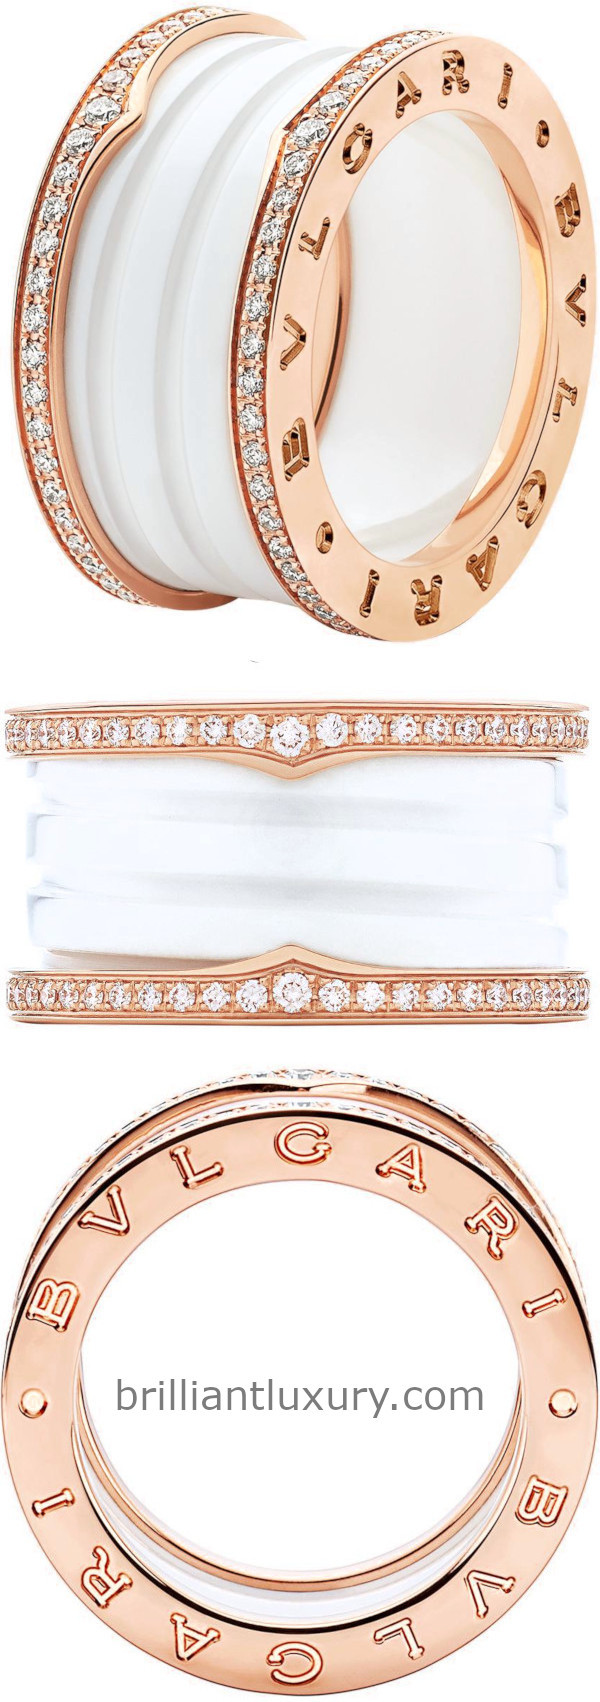 Bvlgari B.Zero1 four-band ring with two 18kt gold loops set with pavé diamonds on the edges and a white ceramic spiral